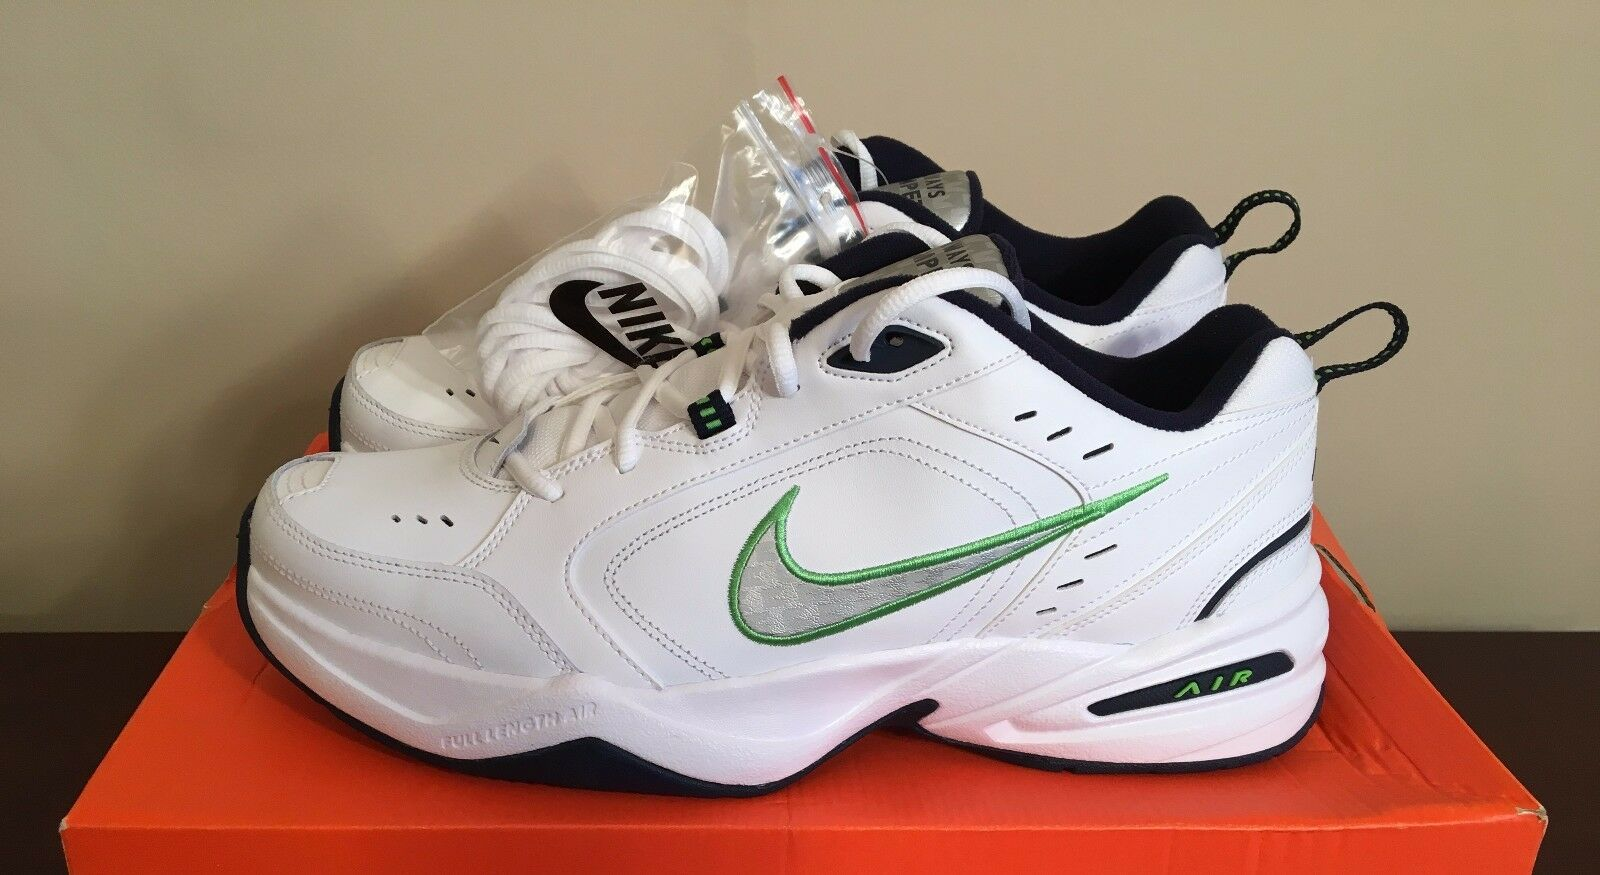 Nike Nike Nike Air Monarch IV 4 Pete Carroll Seattle Seahawks PE Promo Sample US Size 12 0c3d48